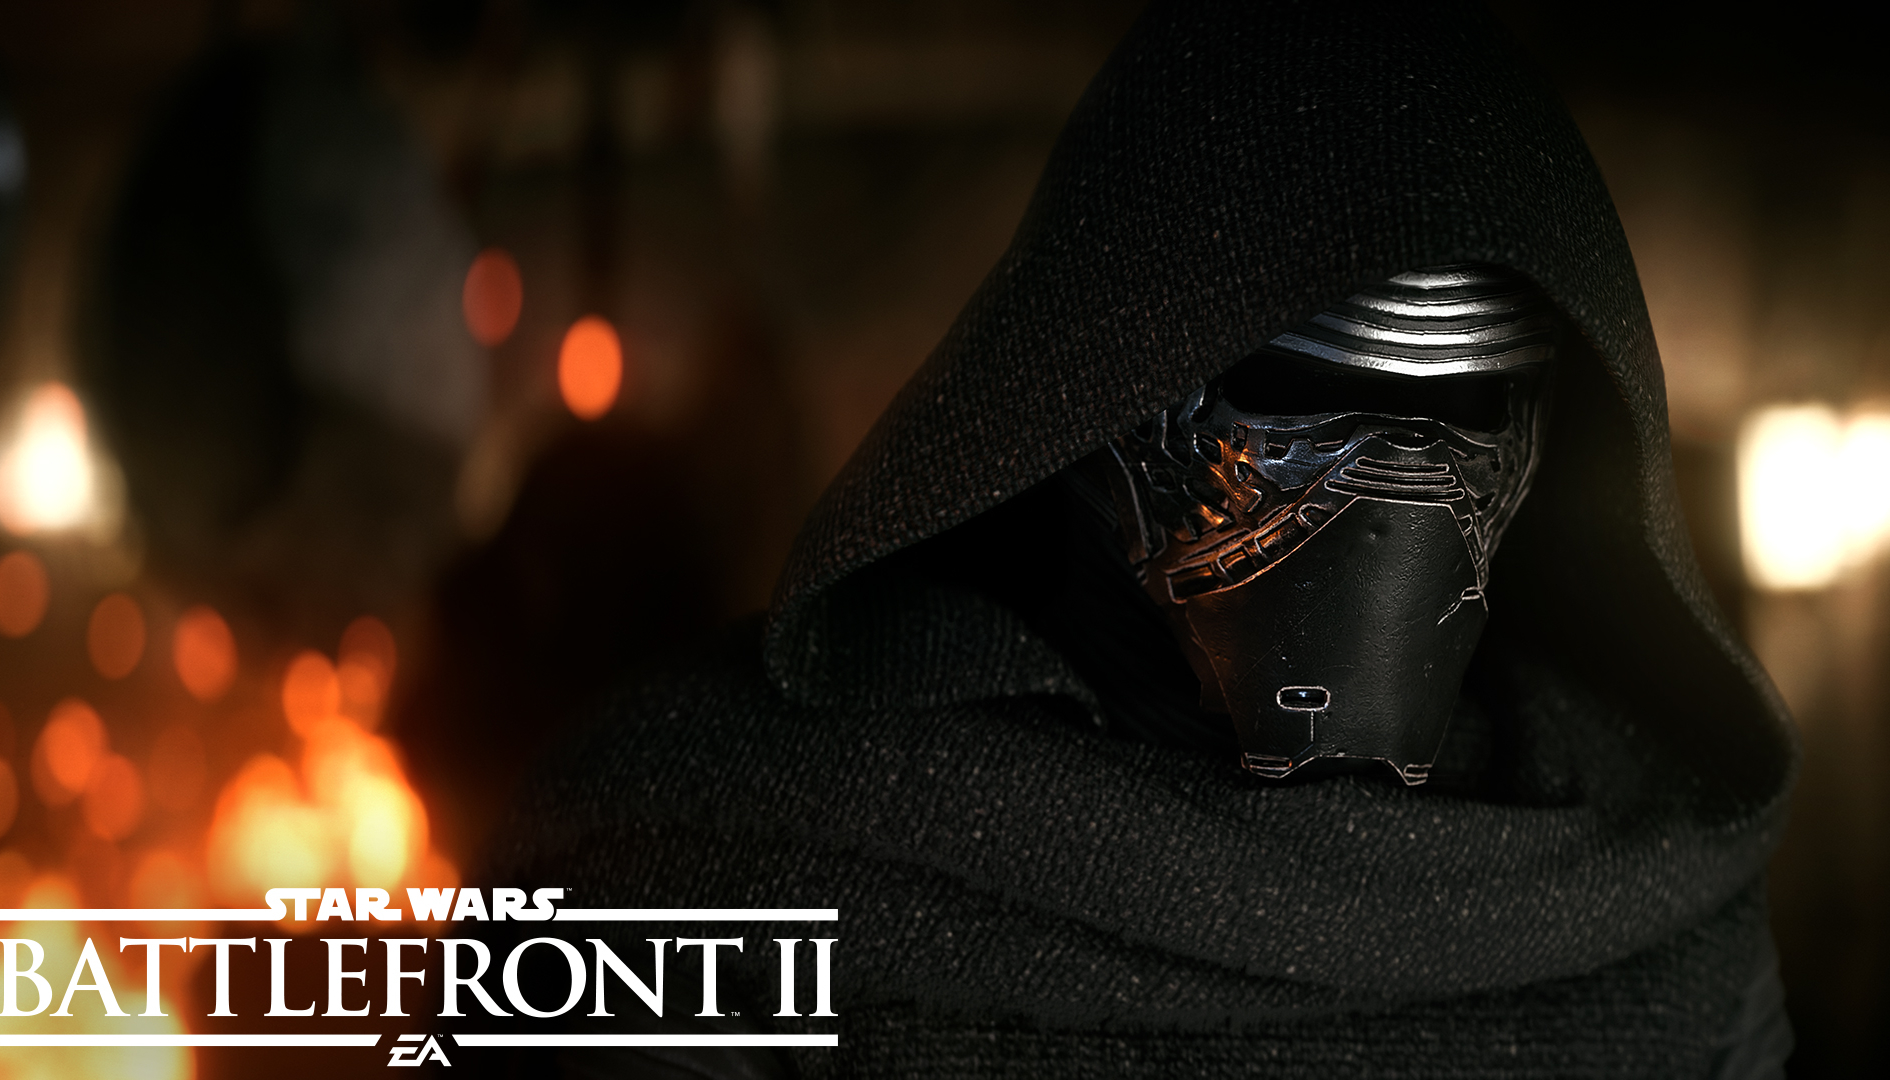 Star Wars Battlefront 2: Rise of the Skywalker sarà al centro dell'update di dicembre